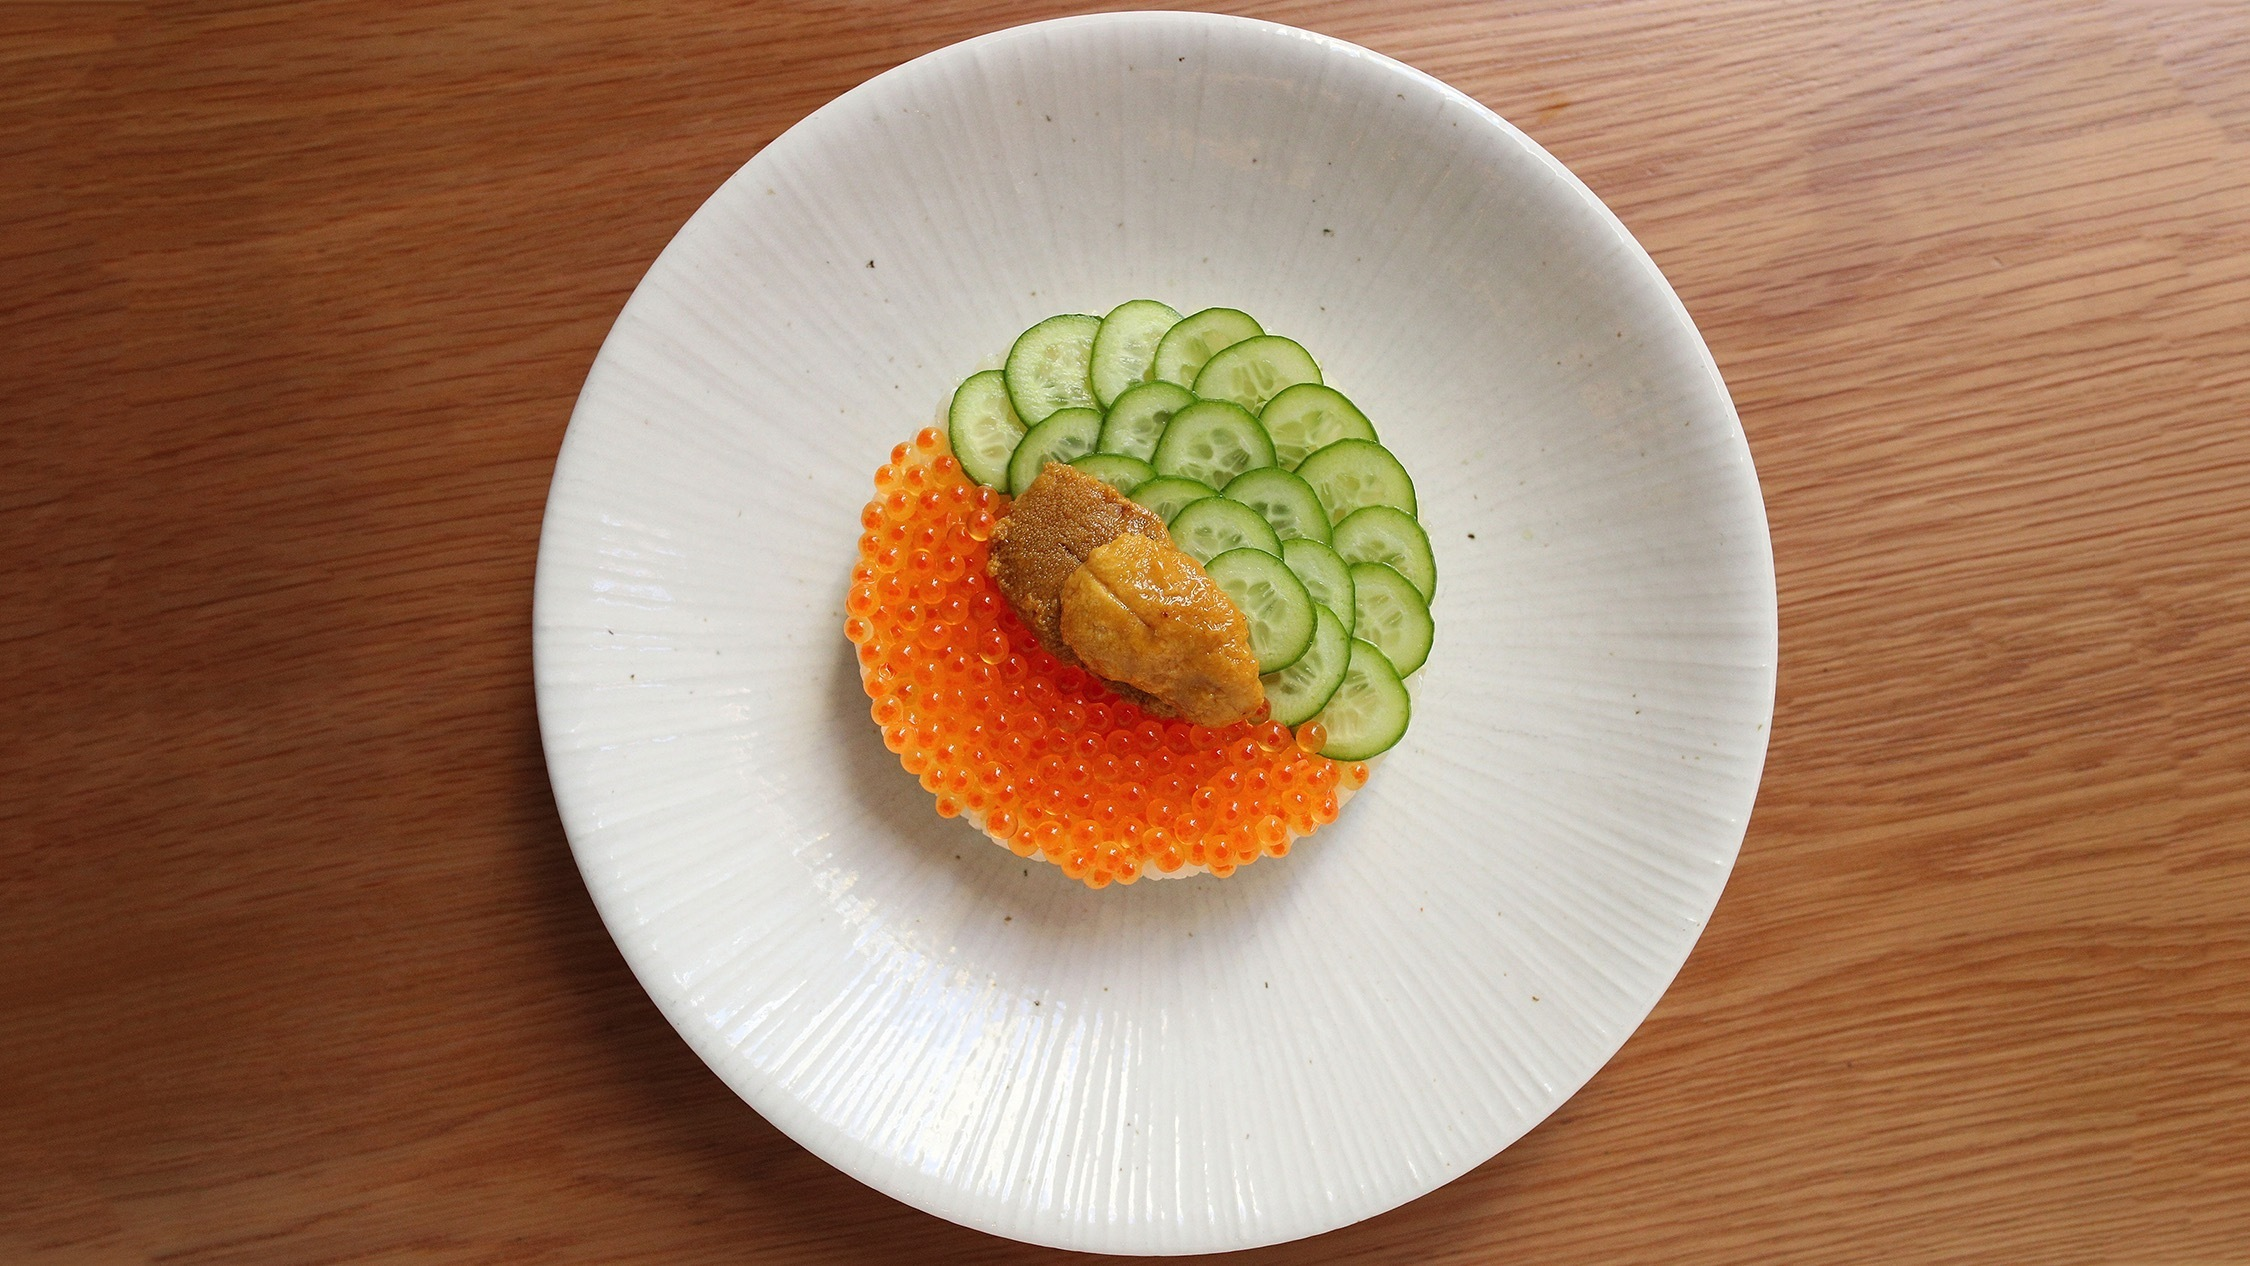 Dish of caviar and cucumber presented in a circle